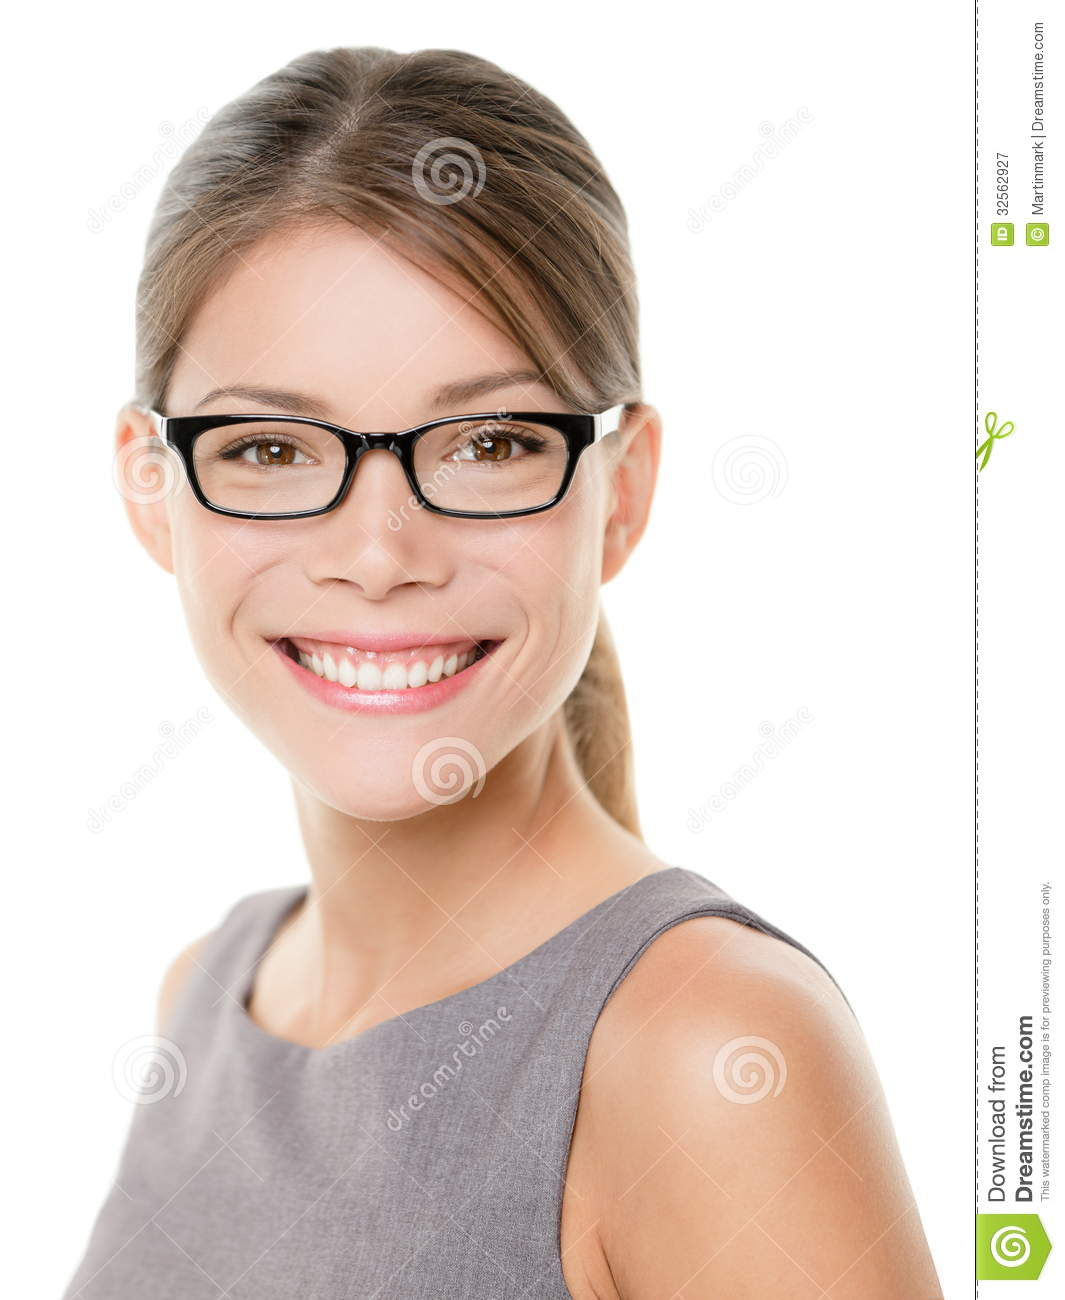 glasses-eyewear-business-woman-happy-portrait-looking-camera-big-smile-close-up-female-model-face-32562927.jpg